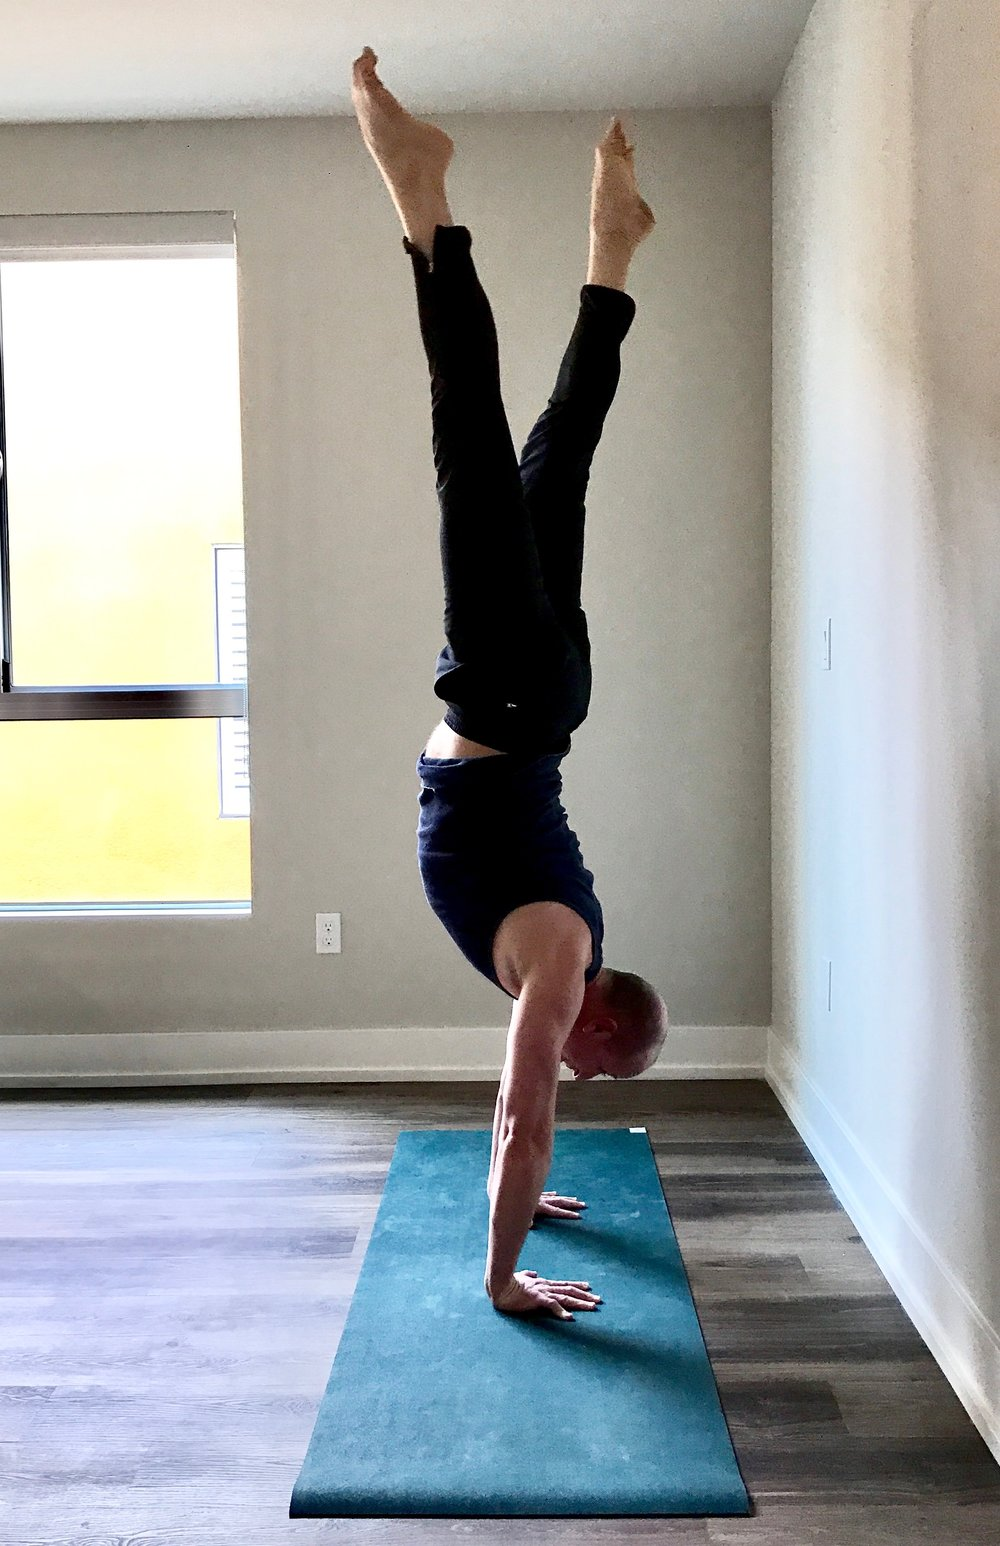 I have been teaching yoga for a decade, and I have a little secret. I can't execute handstand (Ado Mukha Vrksasana) in the middle of the room. Any good yoga teacher would tell me that I am not defined by one yoga posture. I agree. However, the mat is a metaphor for life. Technically I probably can do the asana because I can easily practice it at the wall. To fully express the asana away from it, I have to tumble and potentially make a fool of myself. I have to be willing to fall. In rural Montana I was the only boy who danced ballet.  At nineteen I deserted college to move to New York City with Broadway aspirations. By twenty-nine I had voyaged to Oklahoma City to become an Artistic Director of a regional theater.  And by thirty-seven I abandoned that very steady, comfortable life to return to New York City. I have taken lots of risks. I am now forty-five; there are bigger chances to take.  I find every distraction in the world to help avoid them. I watch TV. I sip booze. I over eat. I troll Facebook. I work out. I do anything to evade telling my truth and skirt creating work. As an artist brutal honesty is required. Sometimes it's not pretty. I want everyone to like me and therefore only present my best side. To be a brilliant creator, I have to display the ugly, boorish and unlikeable parts too. I have to confess to being stubborn and mean, scared and sometimes even depressed.  For many years I have generated art, but not great art. Mainly because I have been petrified of exhibiting my spiritual, creative warrior.  If I parade my heart creativity, I might fail and fall.  Like handstand, risk is a practice. Today I am inching away from the wall.  What is your greatest risk? How are you not being honest with yourself?